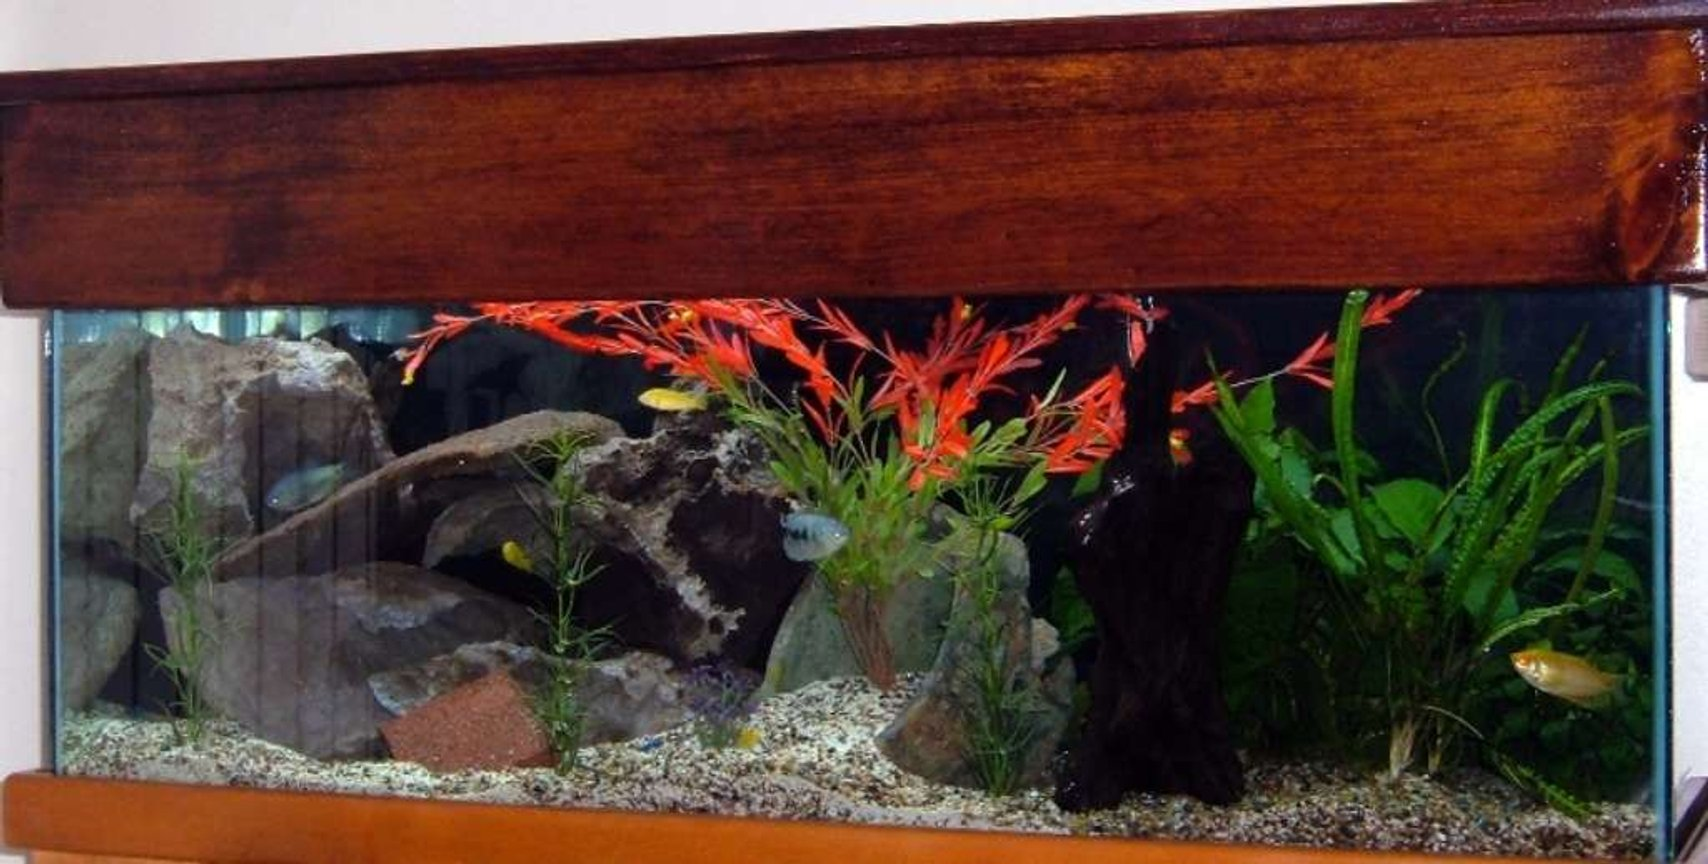 72 gallons freshwater fish tank (mostly fish and non-living decorations) - PIC 2